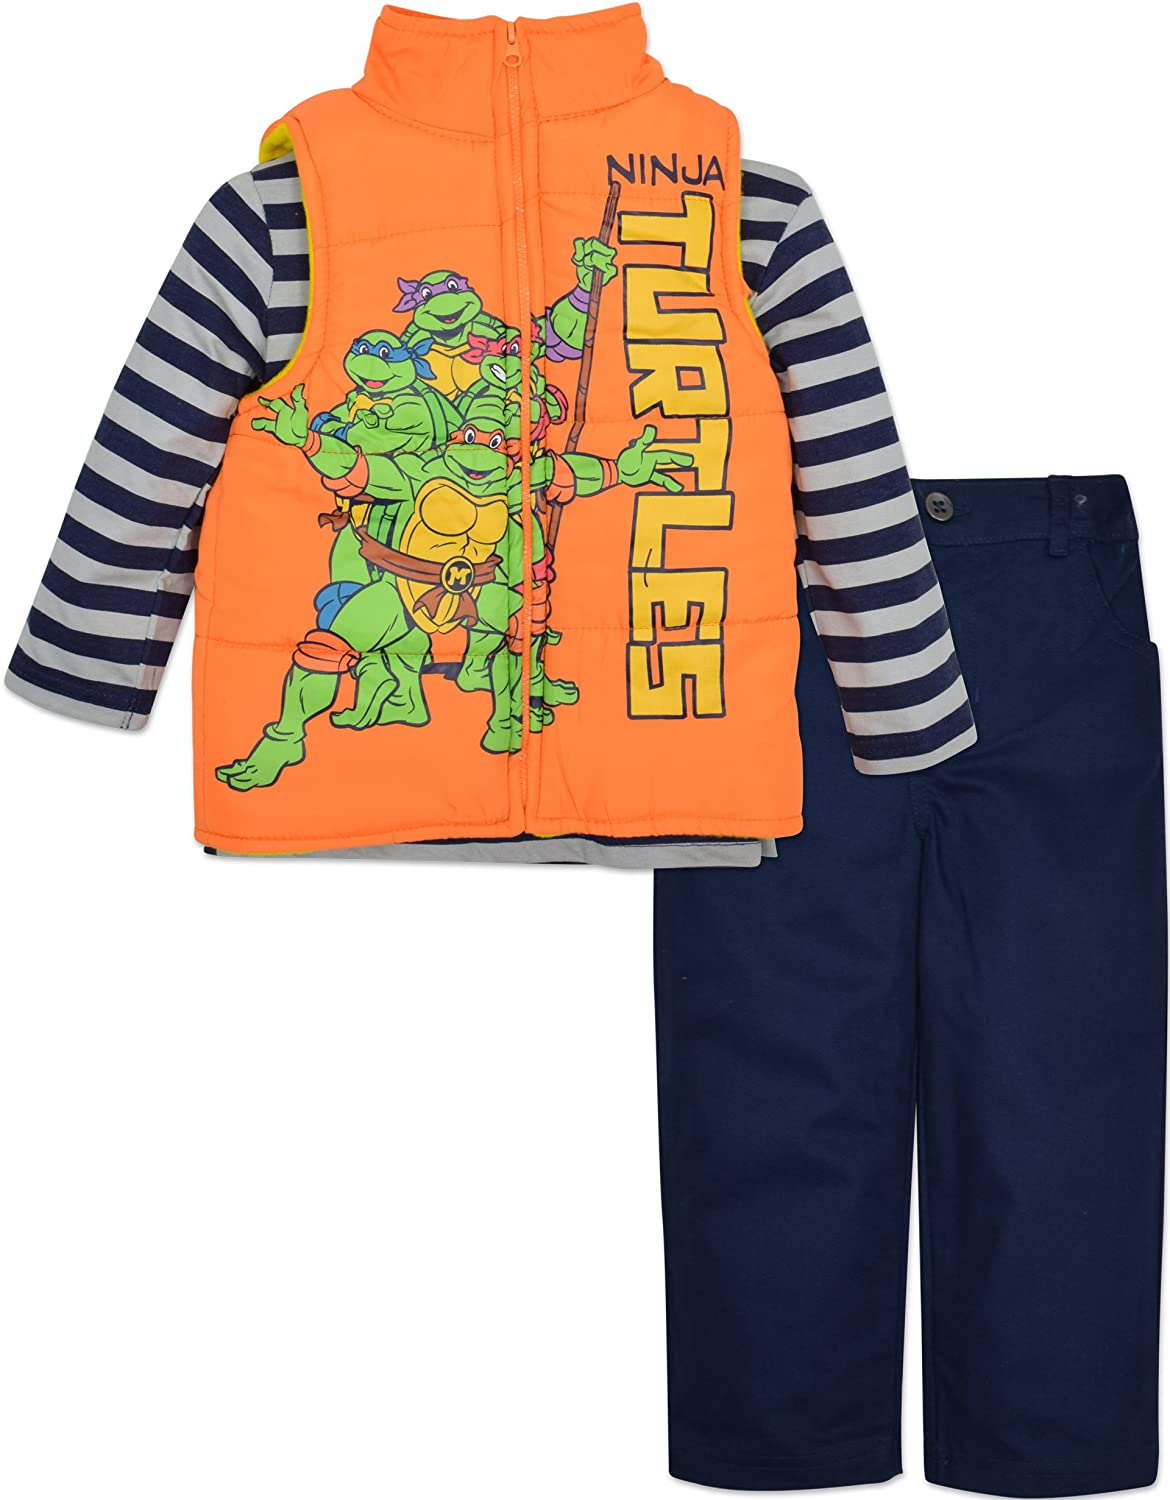 Ninja Turtles Vest Shirt and Pants Set Toddler Boy